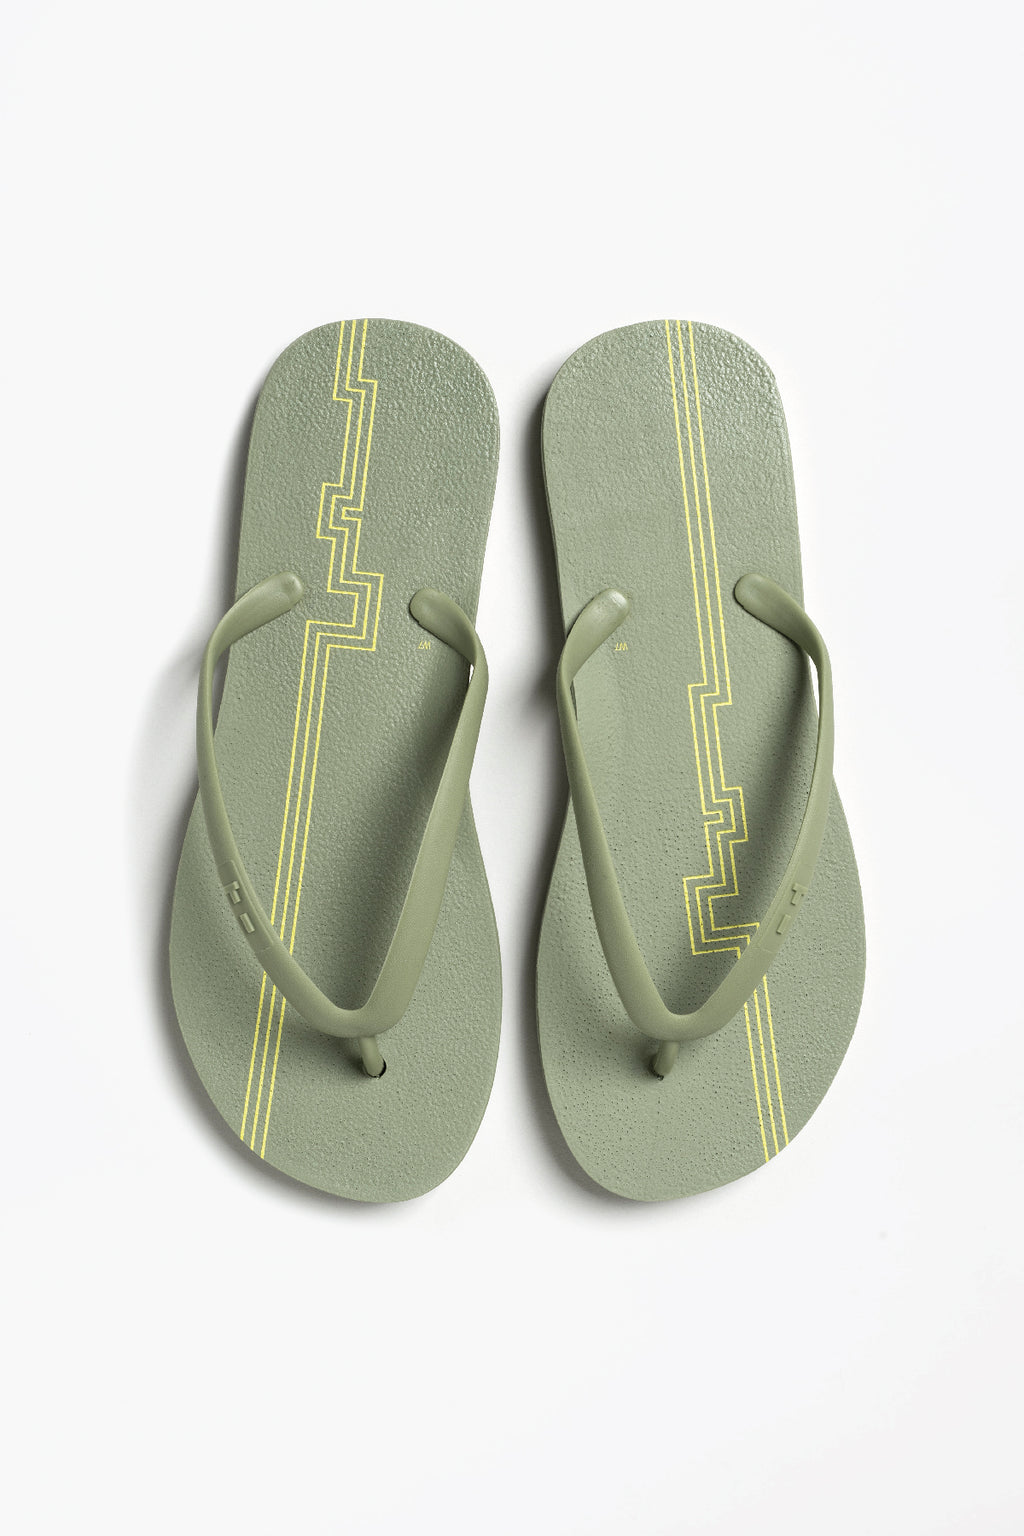 Women's olive green flip flops with stripes. Sustainably made by Tidal New York